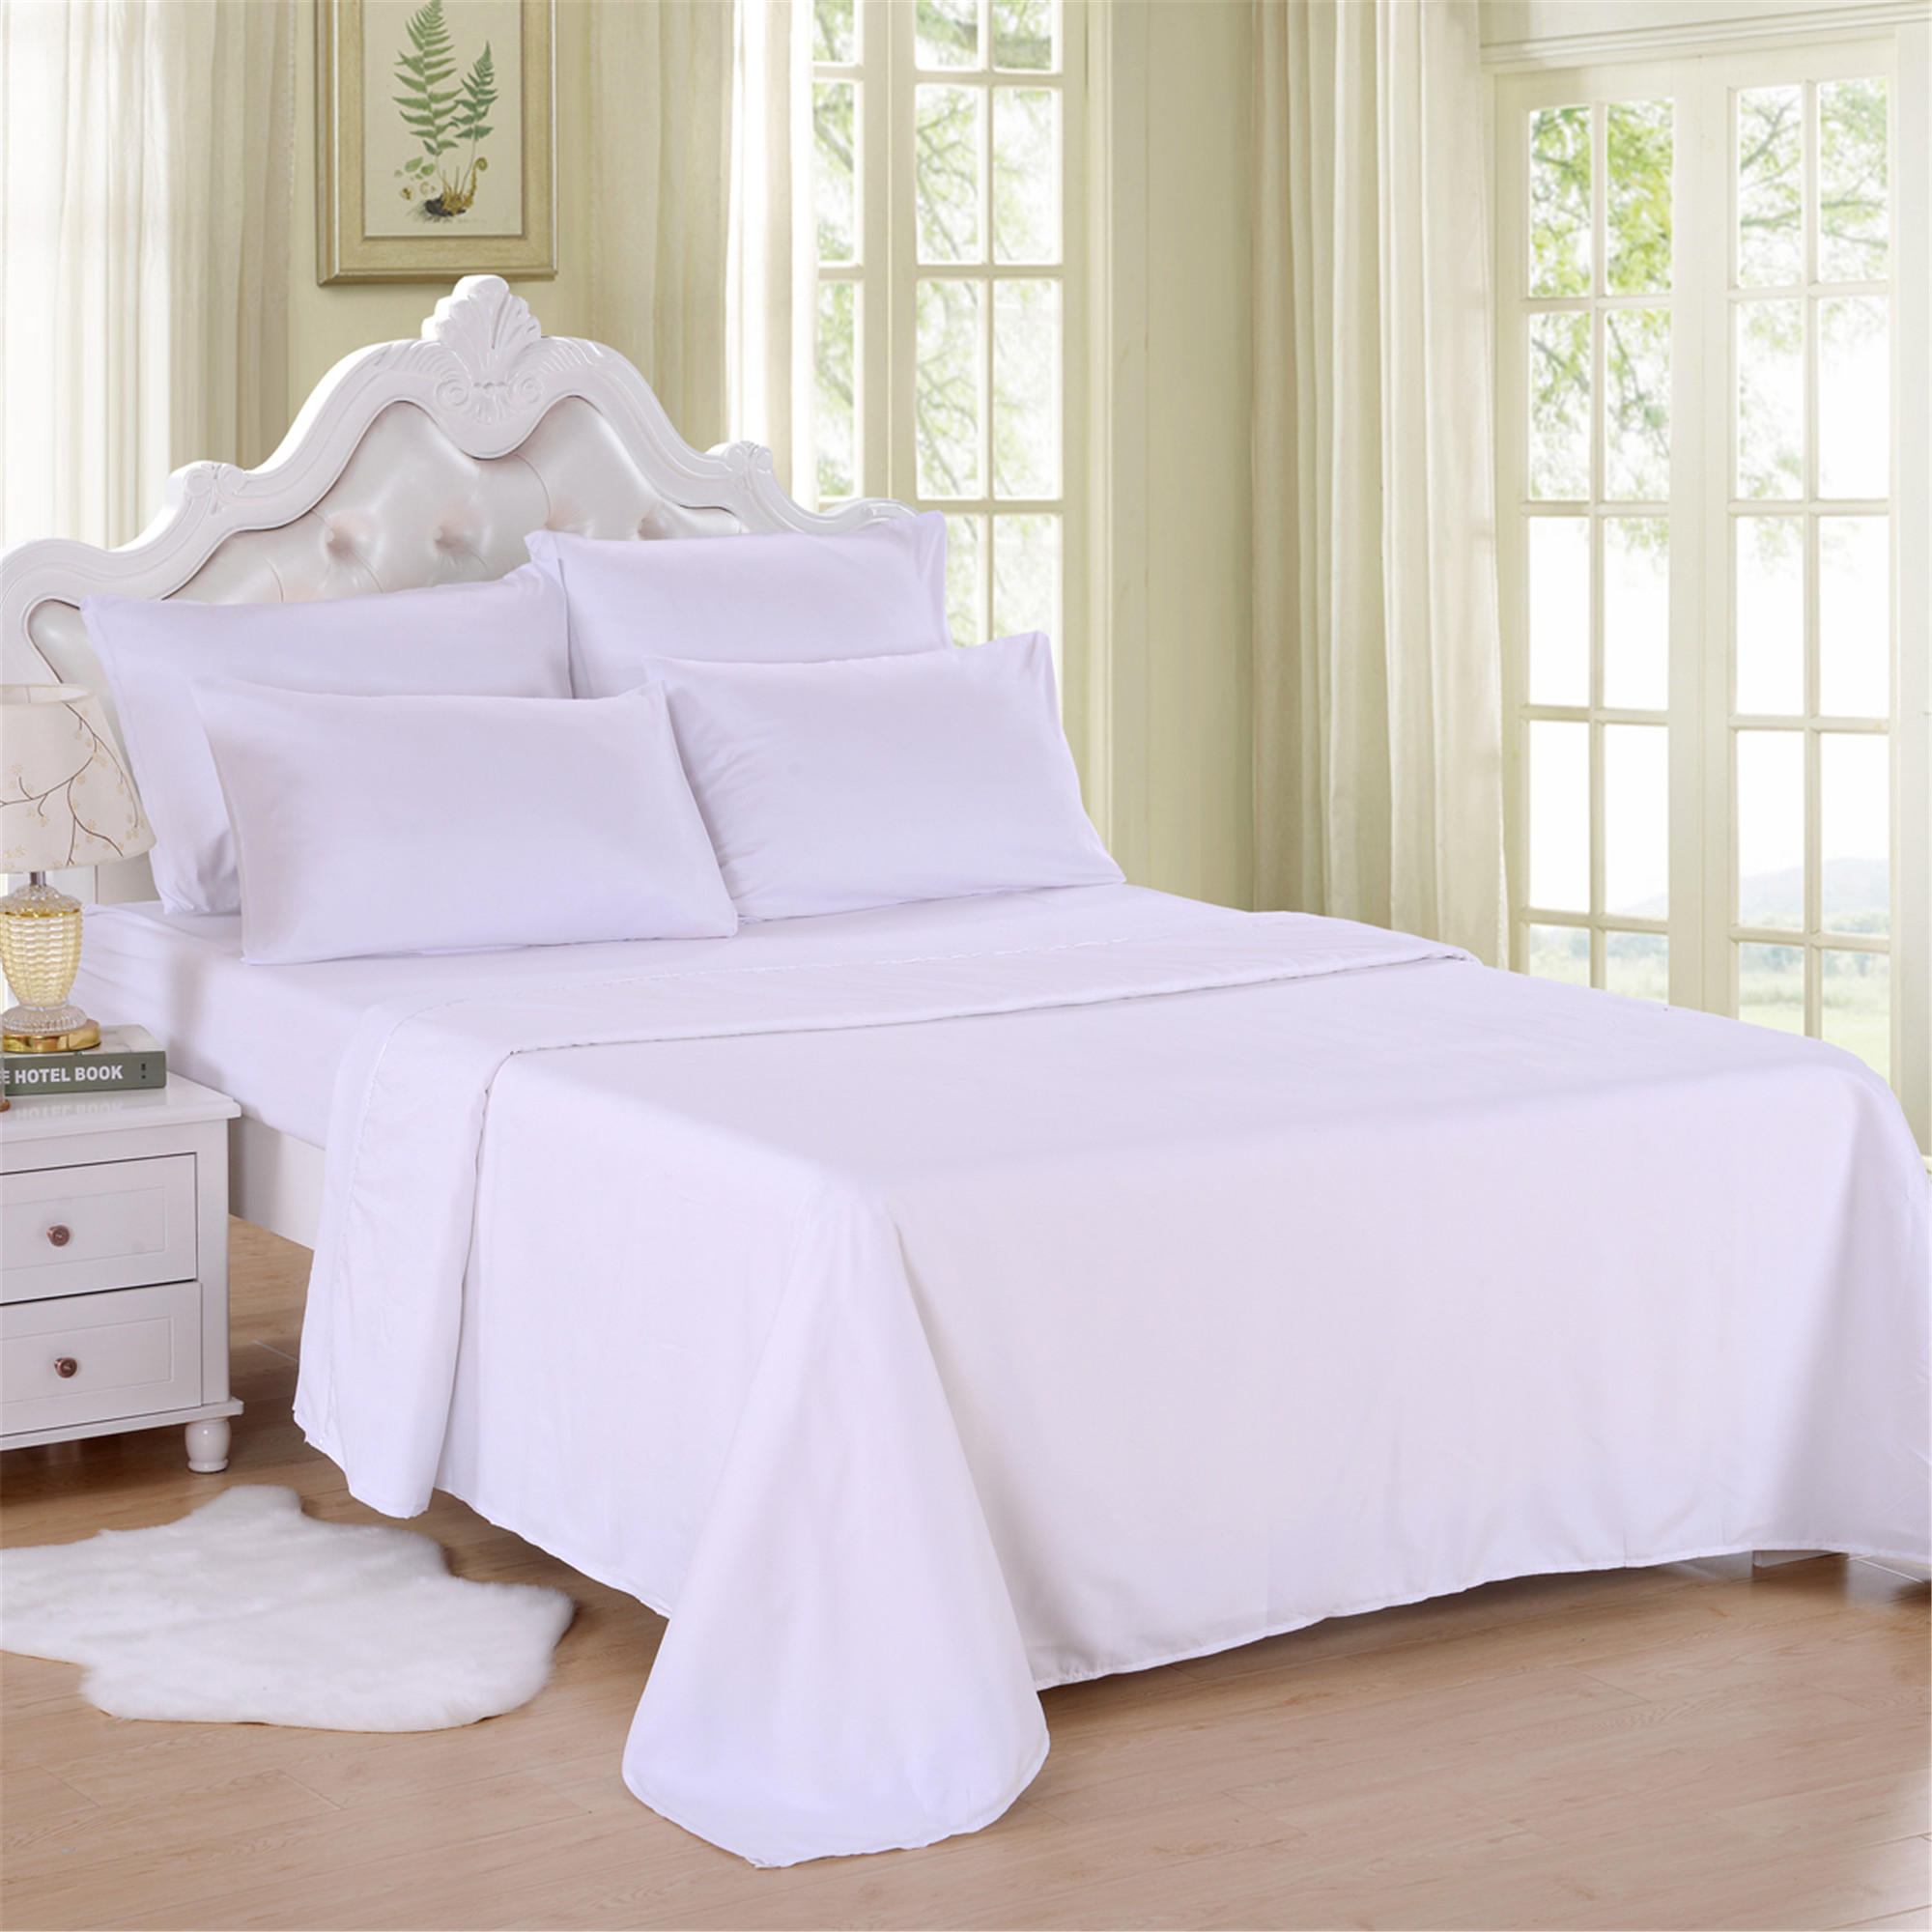 Deep Fitted Sheets Queen Size 6 Piece Soft Brushed Microfiber Bed Sheet Set By Jml 18